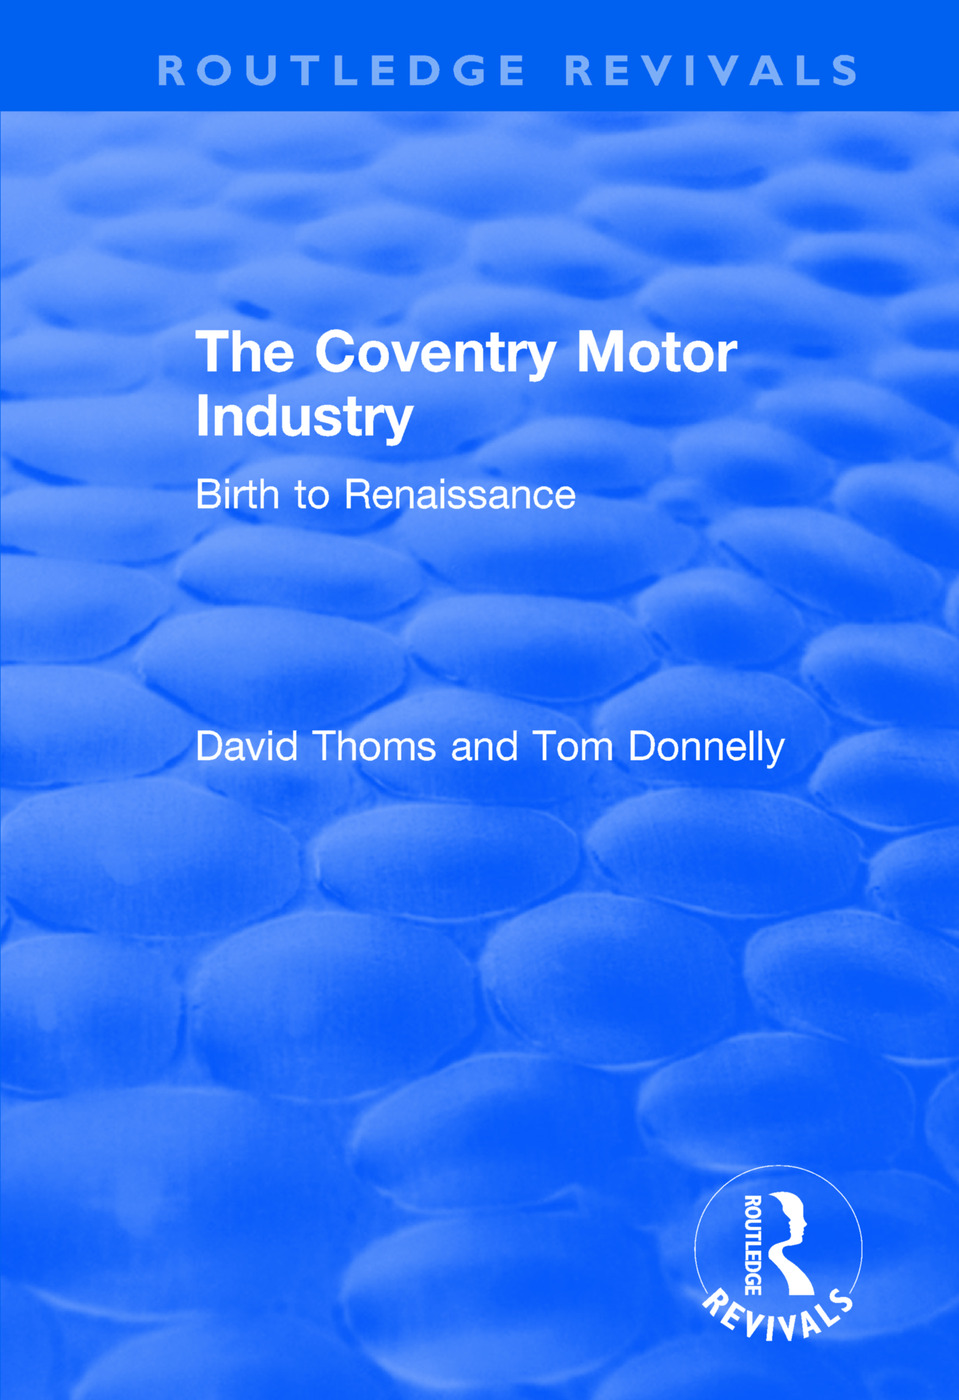 The Coventry Motor Industry